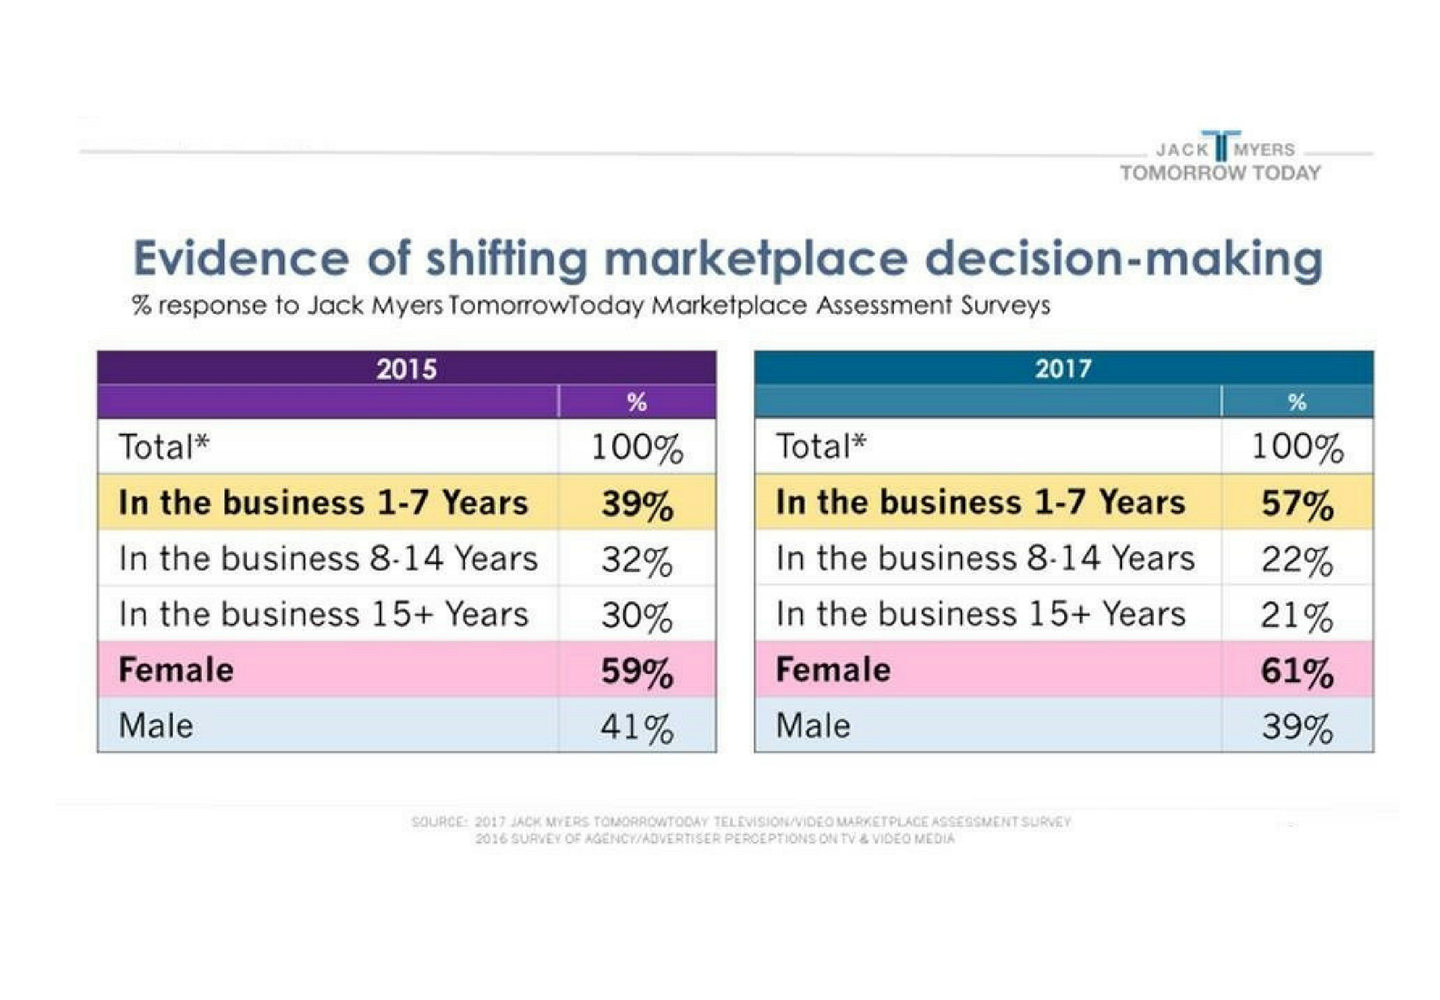 Evidence of Shifting Marketplace Decision-Making